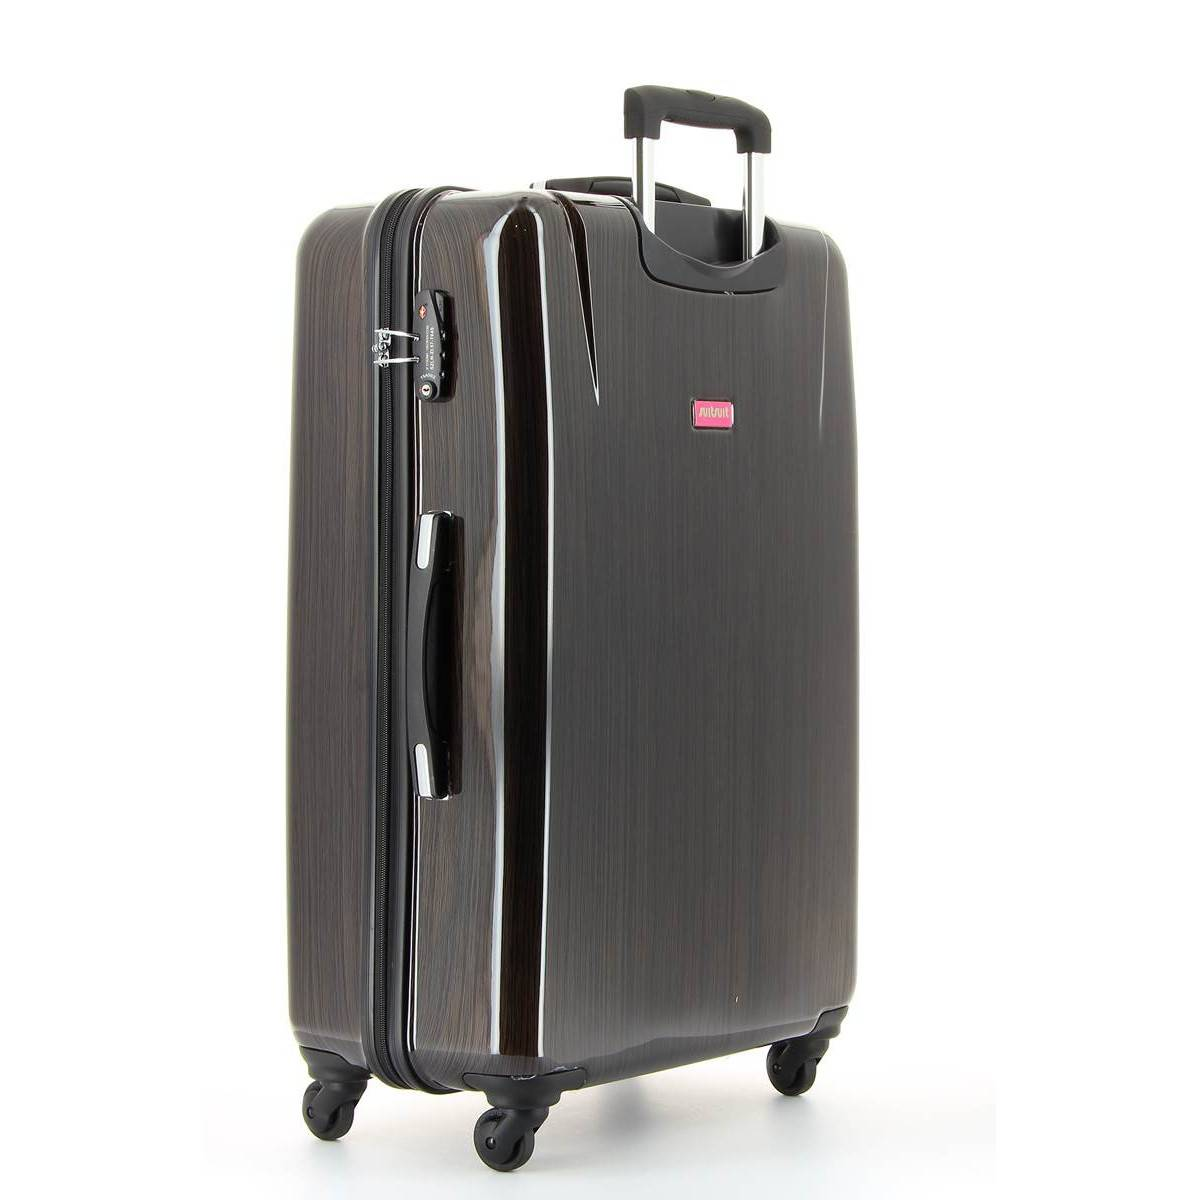 valise rigide grande taille bagages suitsuit stilbag. Black Bedroom Furniture Sets. Home Design Ideas